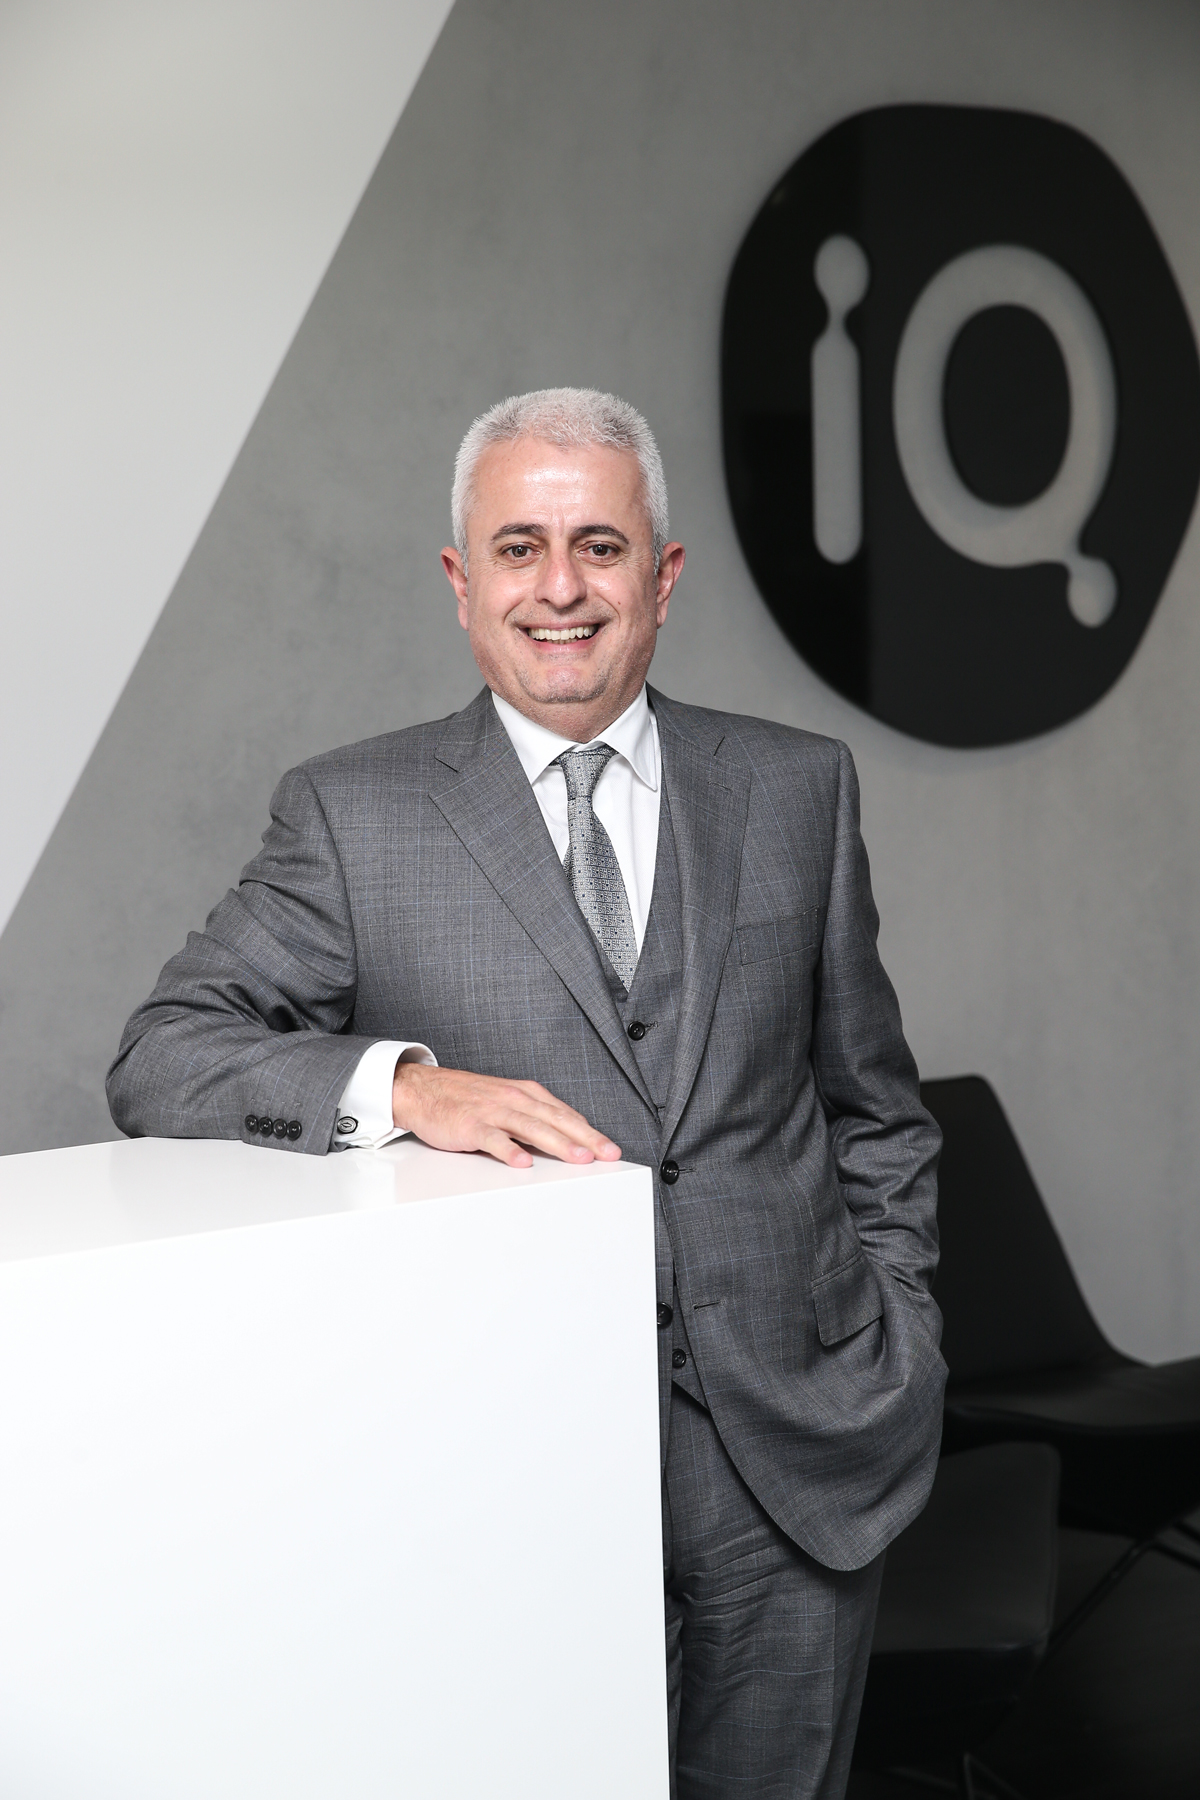 Dr George Syrmalis, Founder & CEO of The IQ Group Global